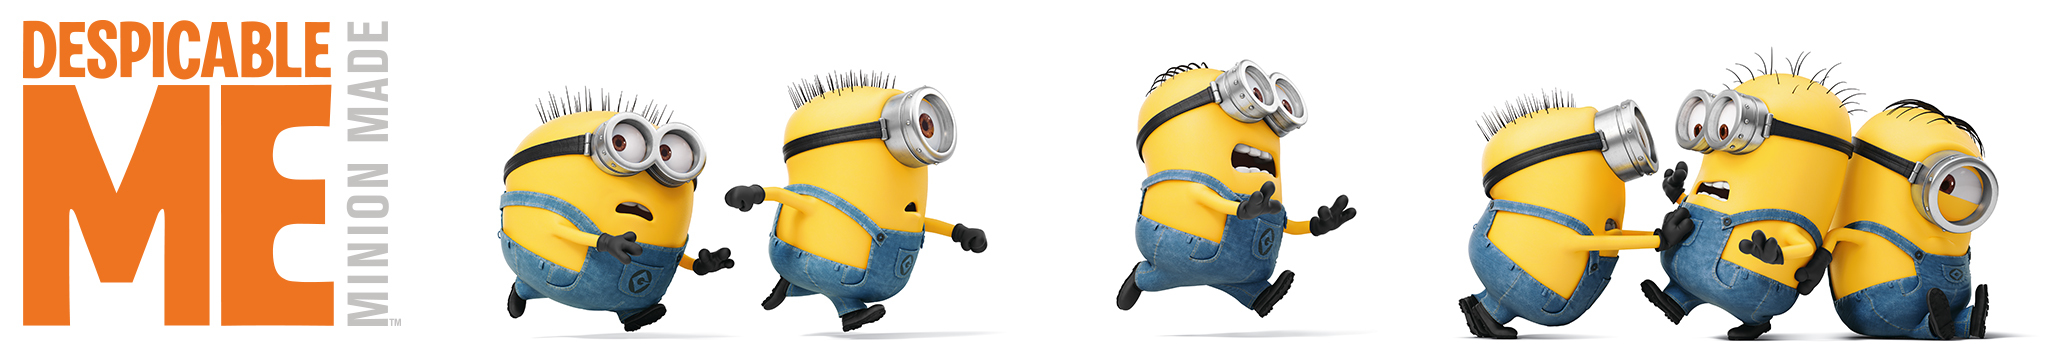 Despicable Me Minions Cake Decorations